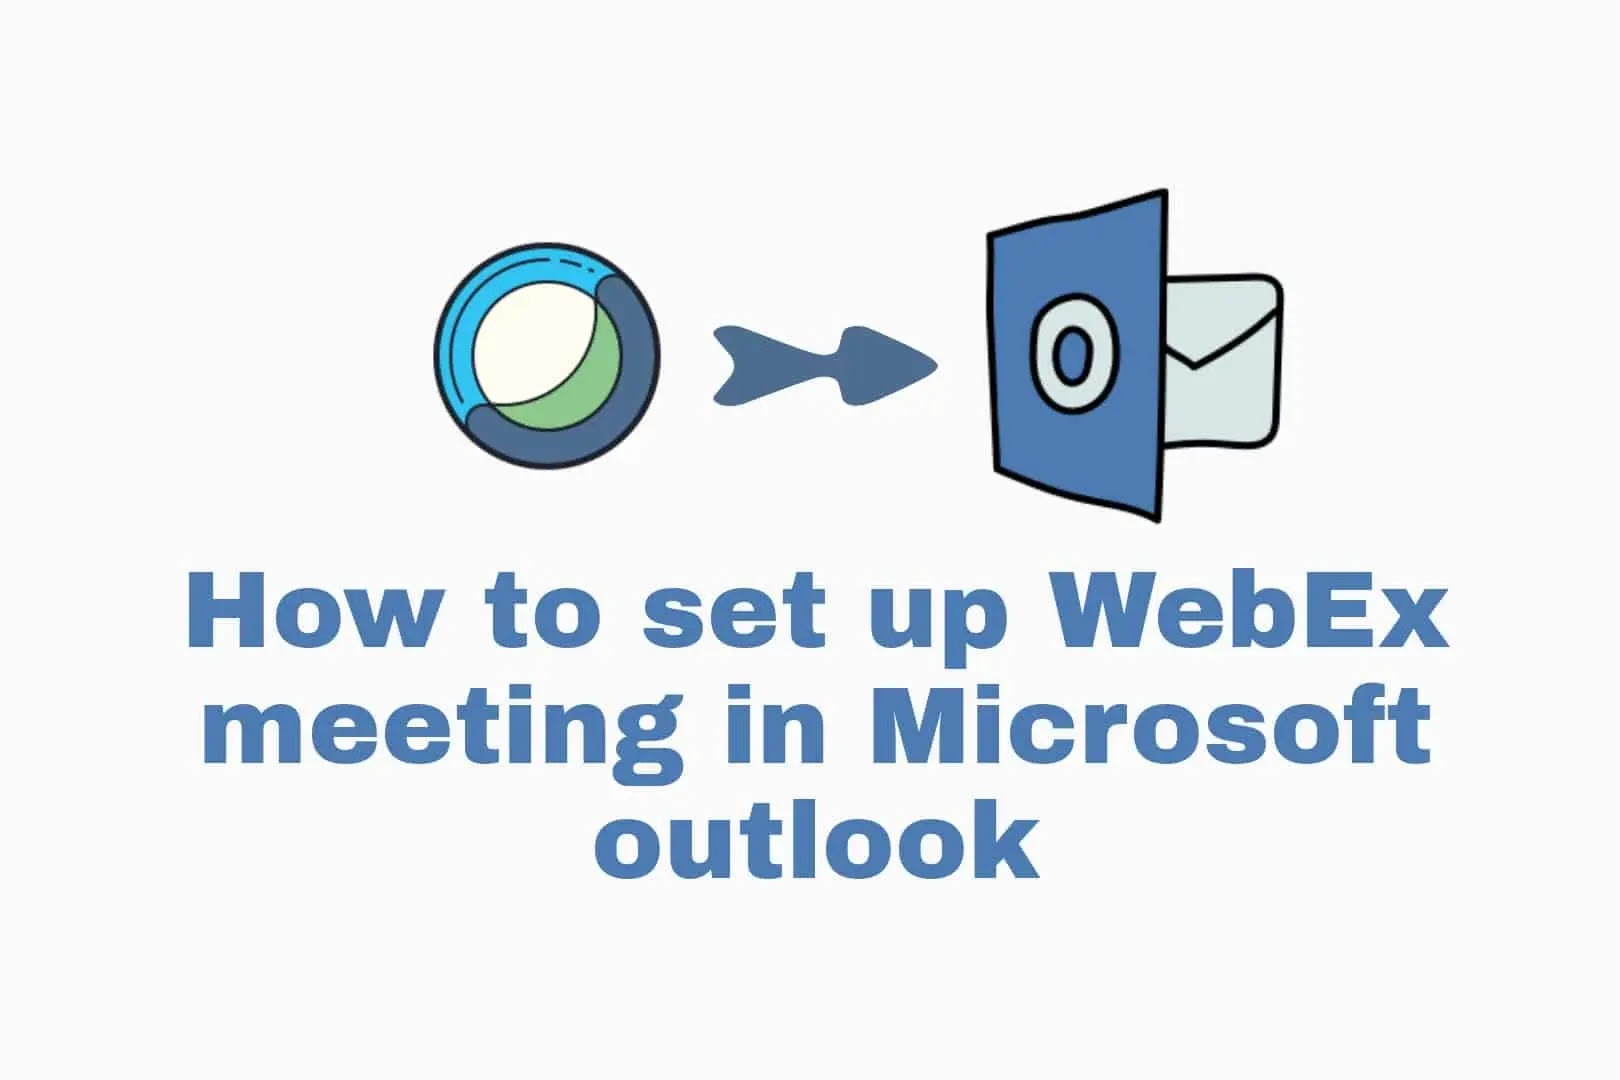 How to set up a WebEx meeting in Microsoft outlook 2010/2013/2016/2019/365